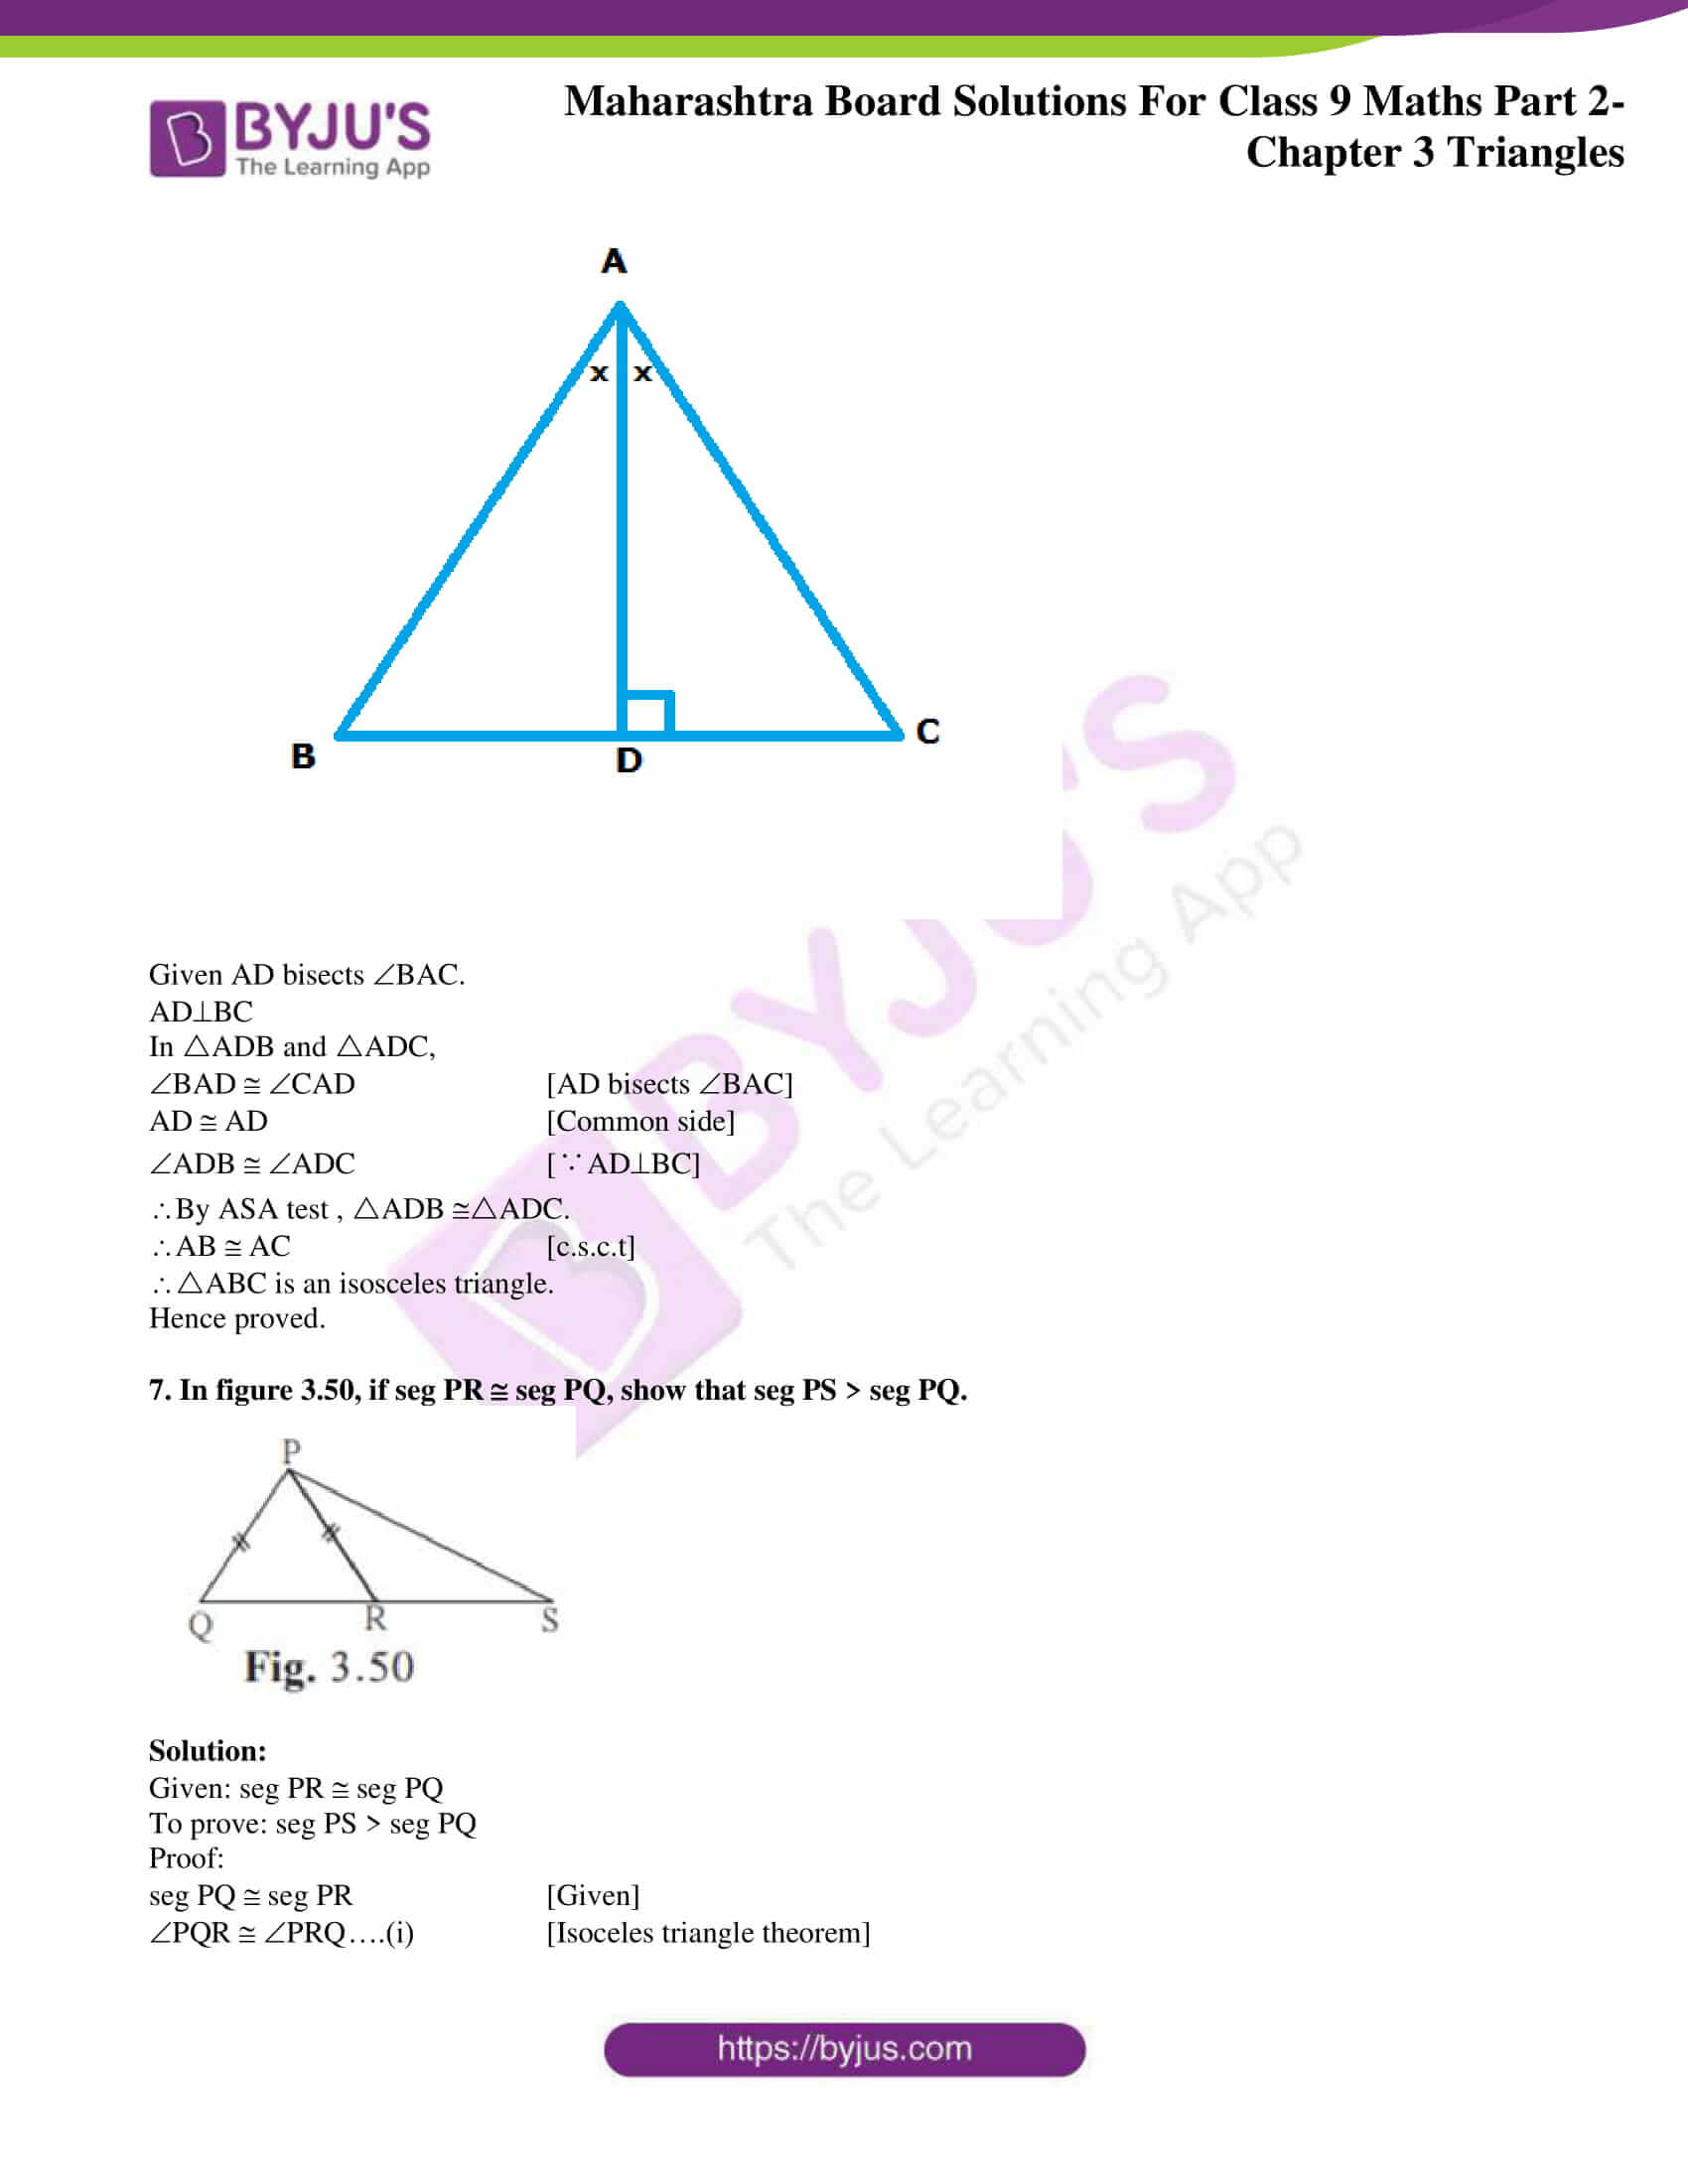 msbshse solutions for class 9 maths part 2 chapter 3 17